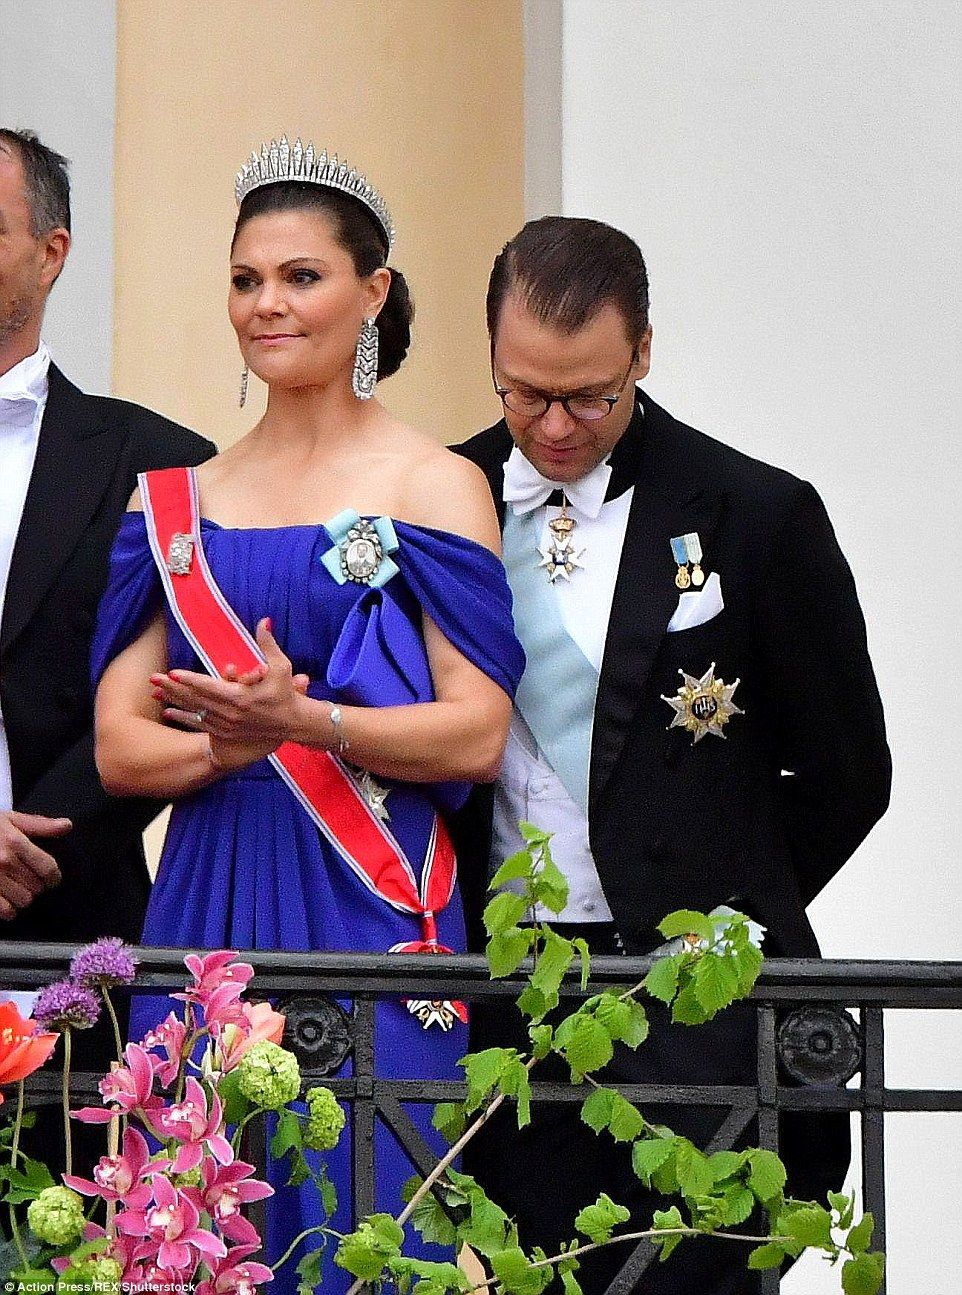 9 May 2017 - King Harald and Queen Sonja of Norway celebrate their 80th birthday in Oslo - dress by Elia Saab, clutch by Yves Saint Laurent